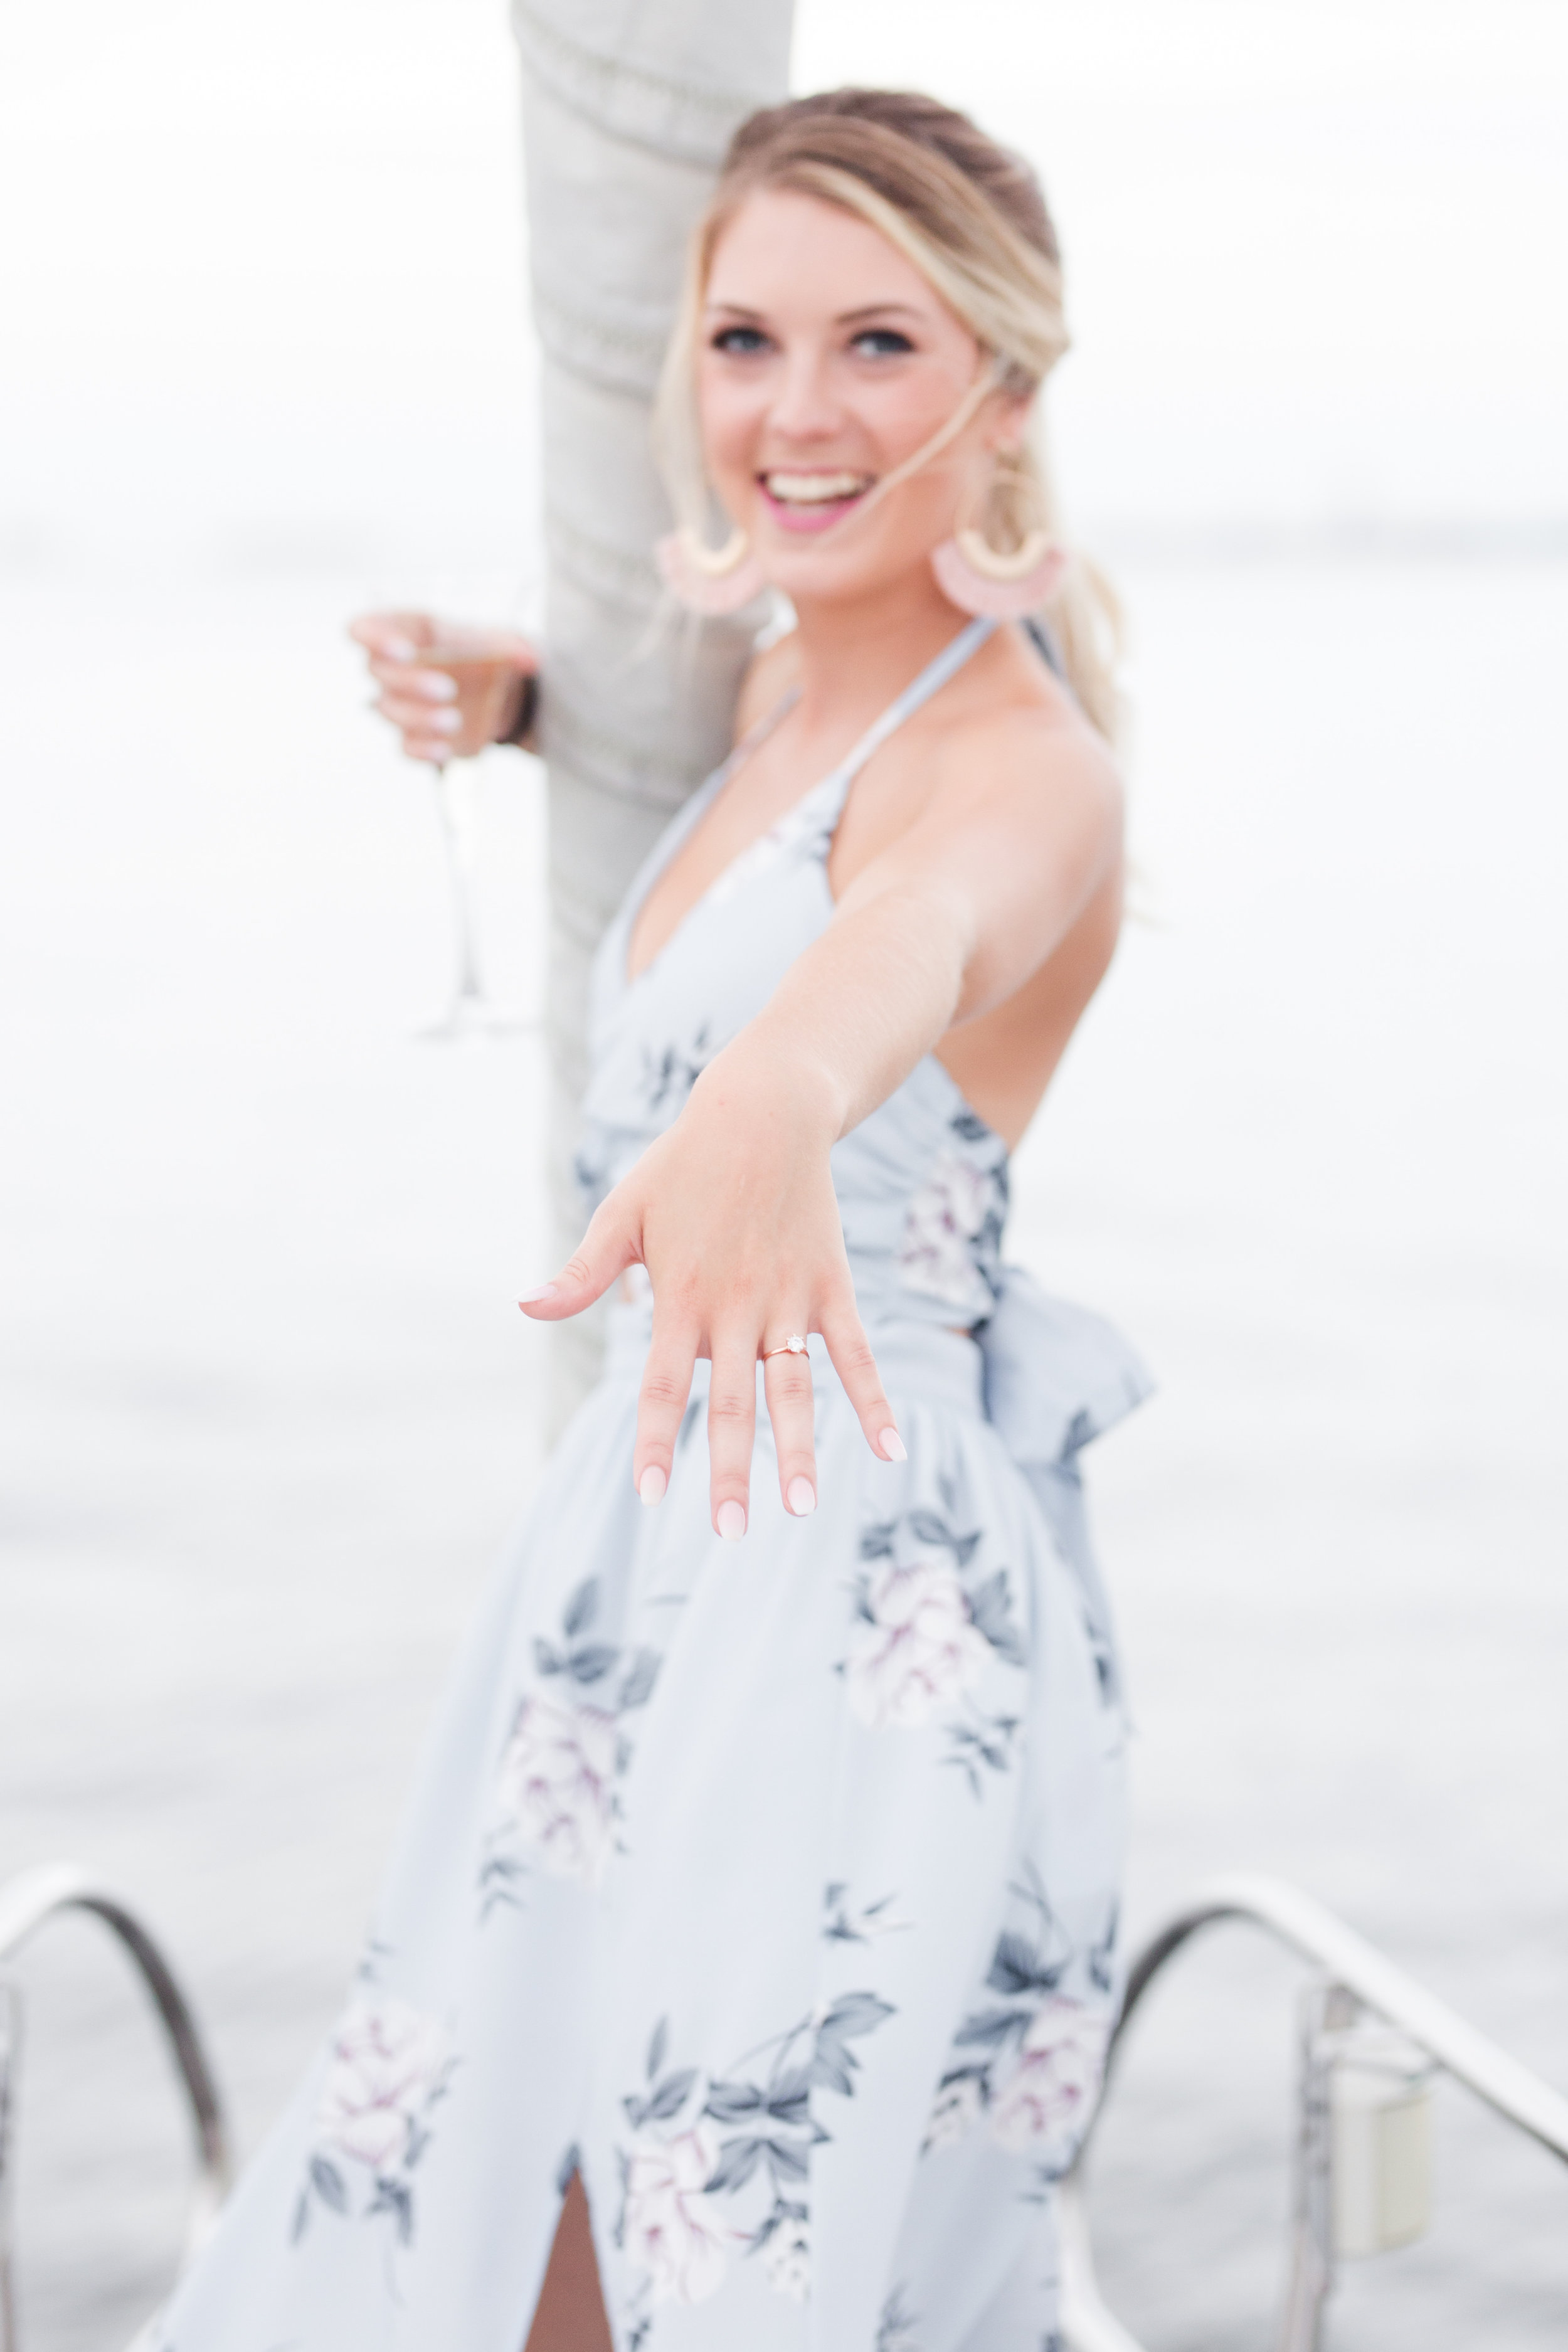 Photo Credits:   Jenna Grace Photography  Planning: Emma Allen Photography and Sara Beach Photography  Charleston Yachts  Styled Well Boutique  Models: Ashton Crow and Patted Drake